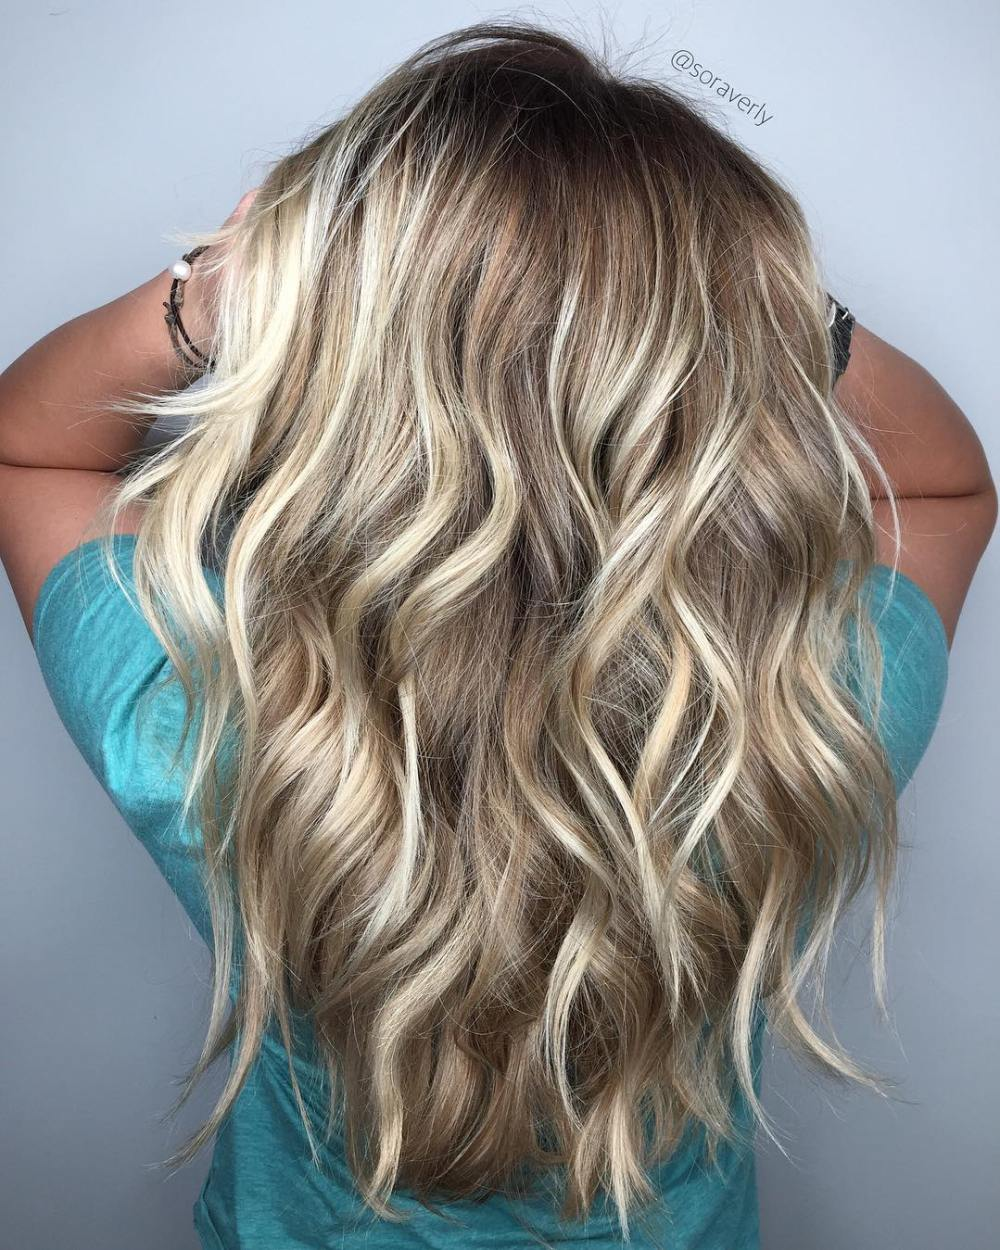 11 Balayage Hair Color Ideas with Blonde, Brown and Caramel